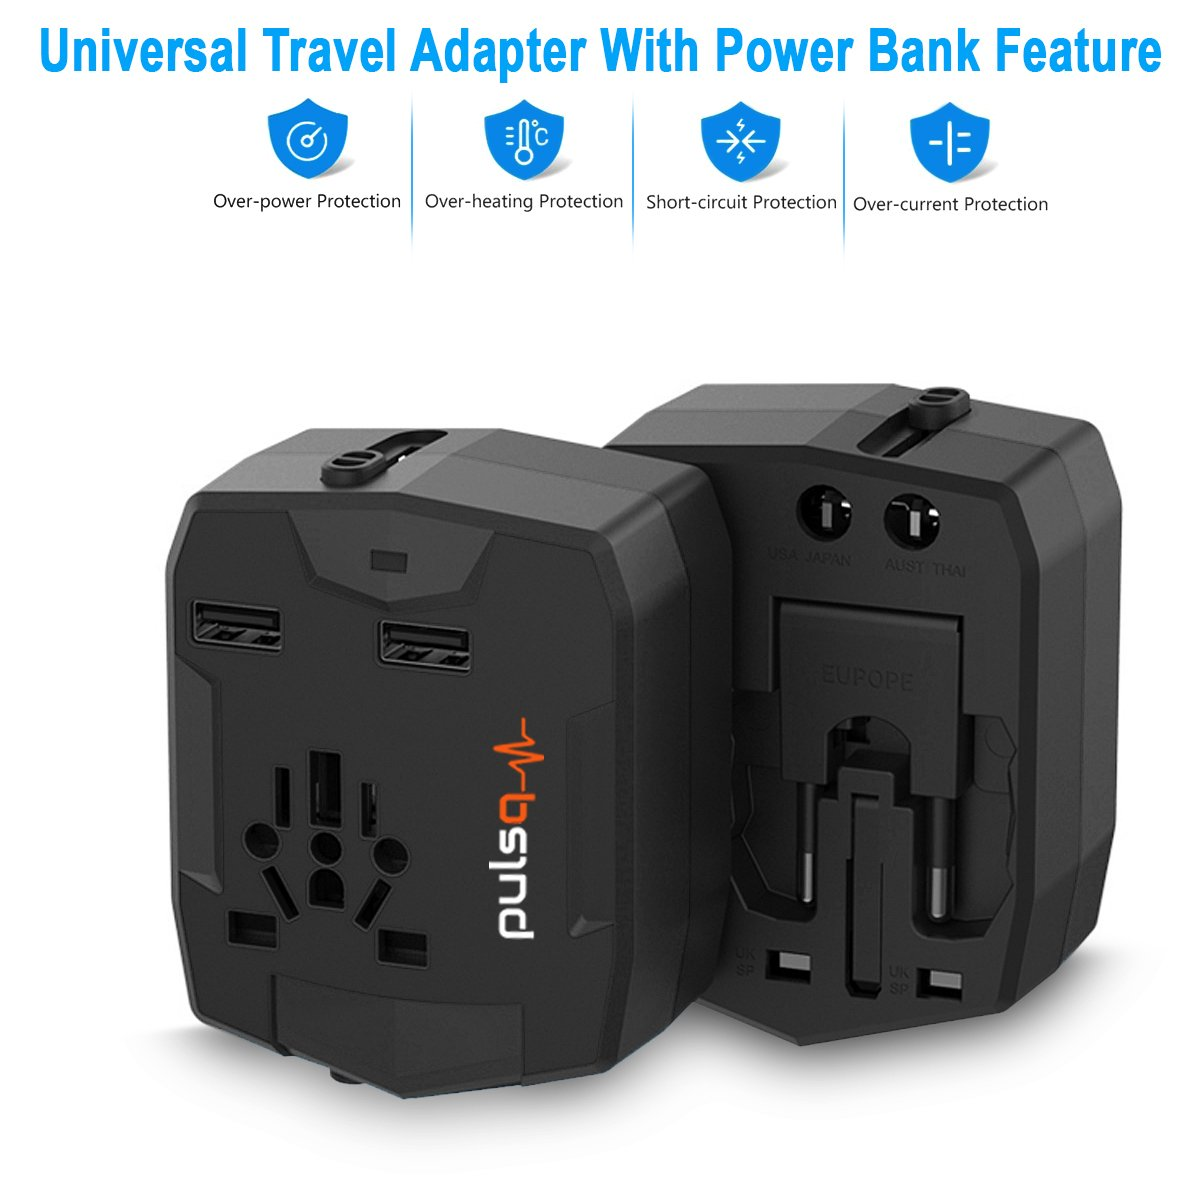 World Travel Adapter, Cellularvilla Universal Travel Adapter with Power Bank [6000mAh], Dual USB, All-In-One International Plugs for Europe Italy UK Asia travel accessories - Black